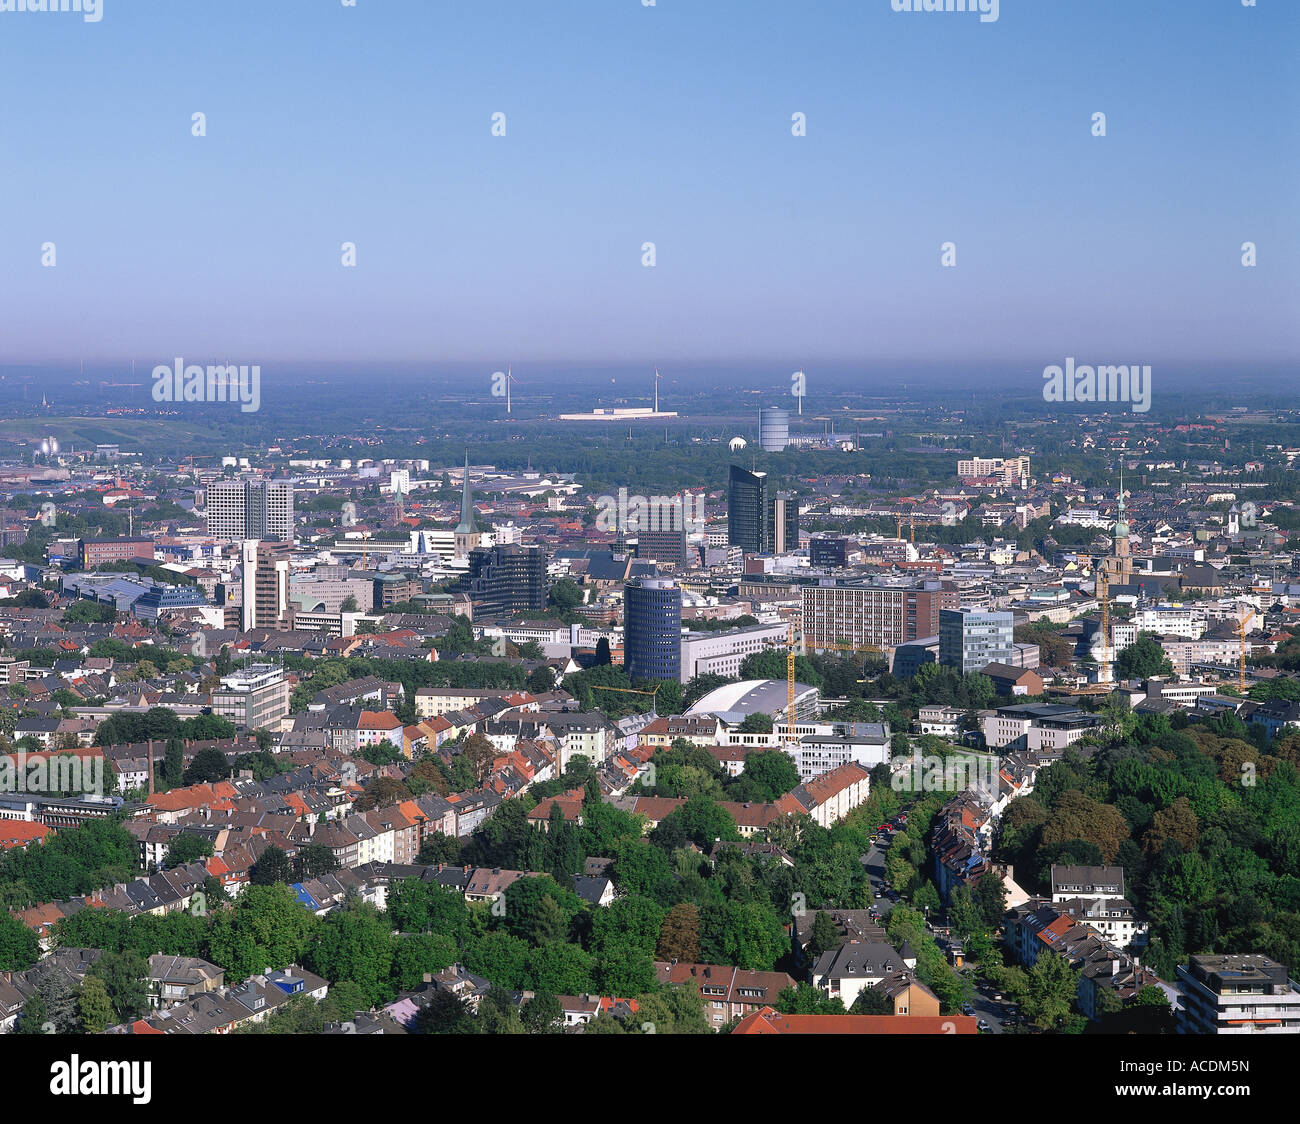 geographie reisen deutschland nordrhein westfalen dortmund blick auf die stadt. Black Bedroom Furniture Sets. Home Design Ideas